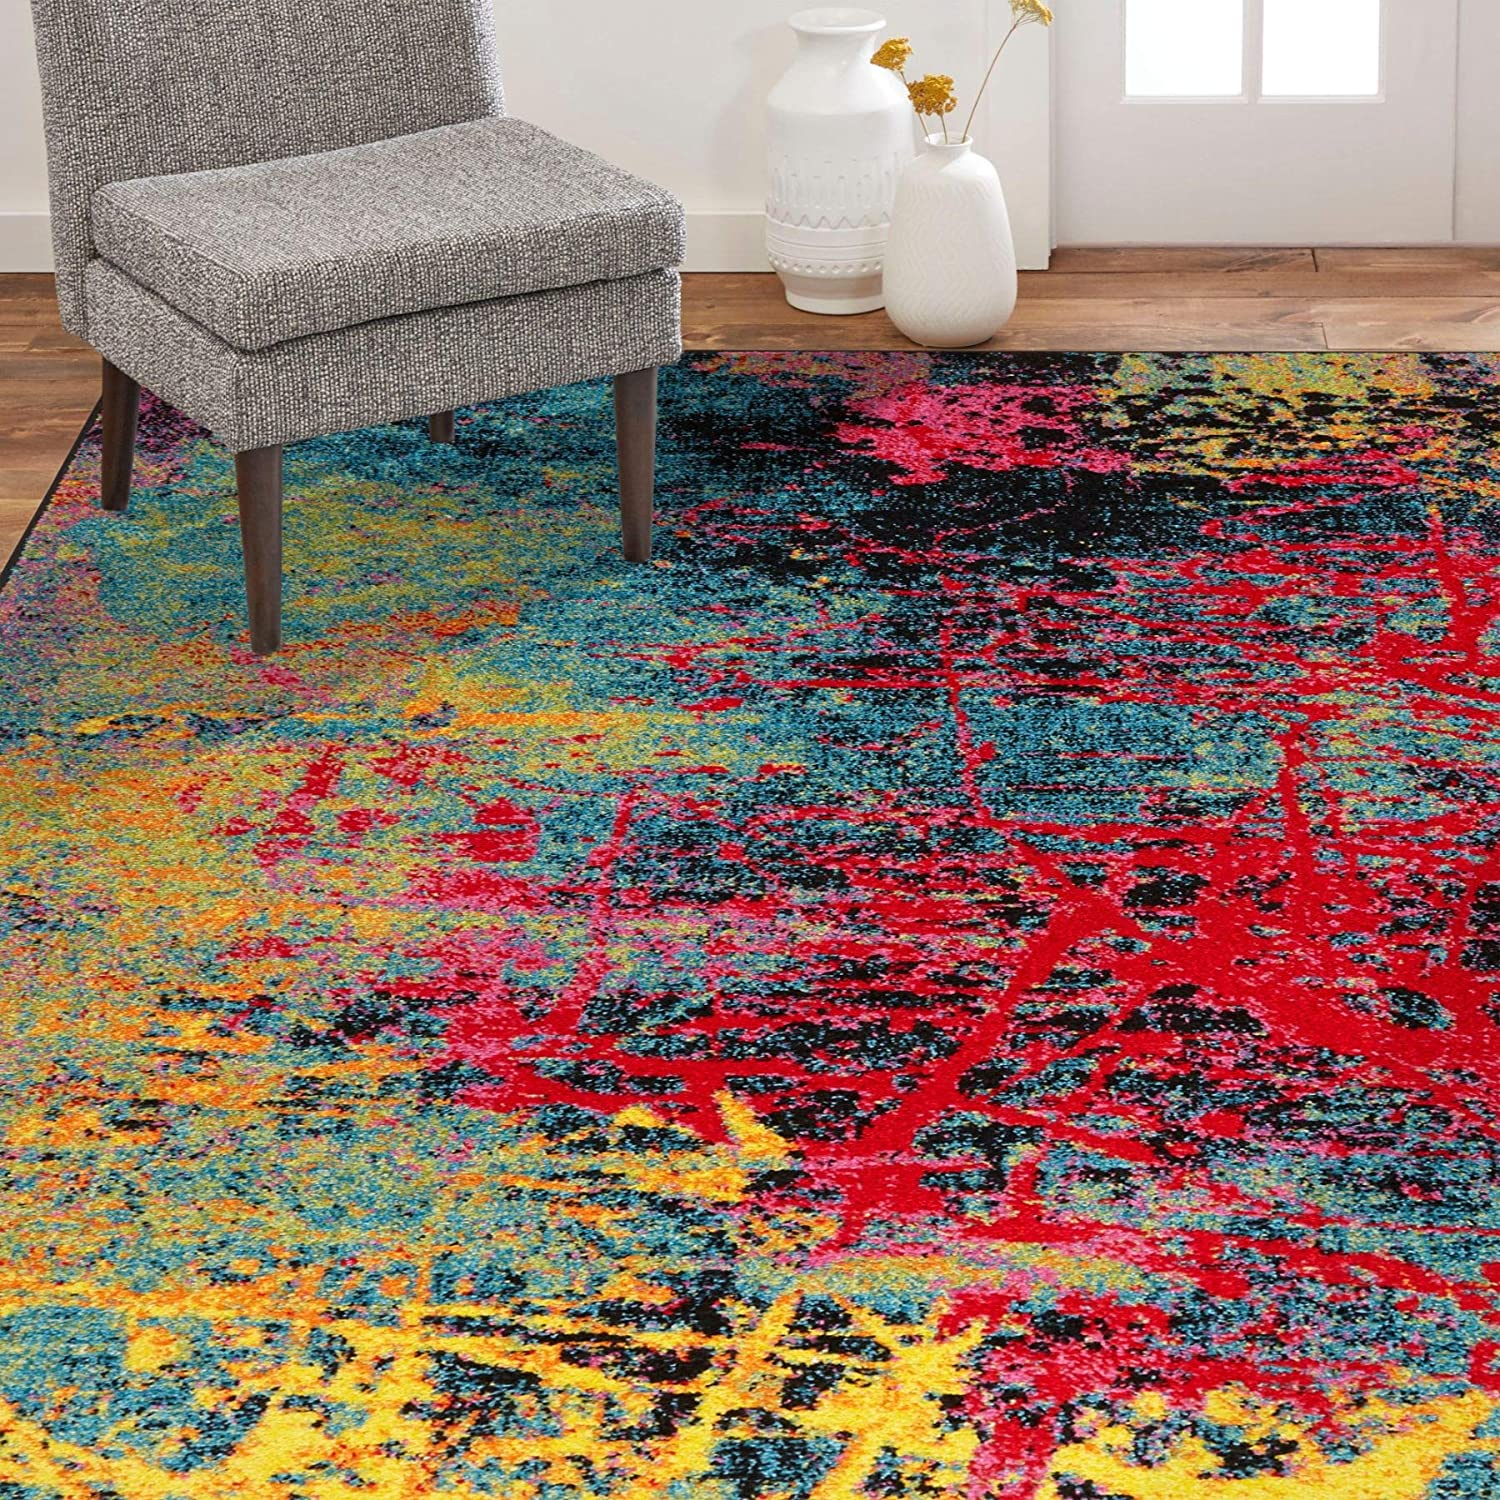 Amazon Com Home Dynamix Splash Tomie Area Rug Abstract 5 2 X7 2 Black Blue Pink Yellow Furniture Decor